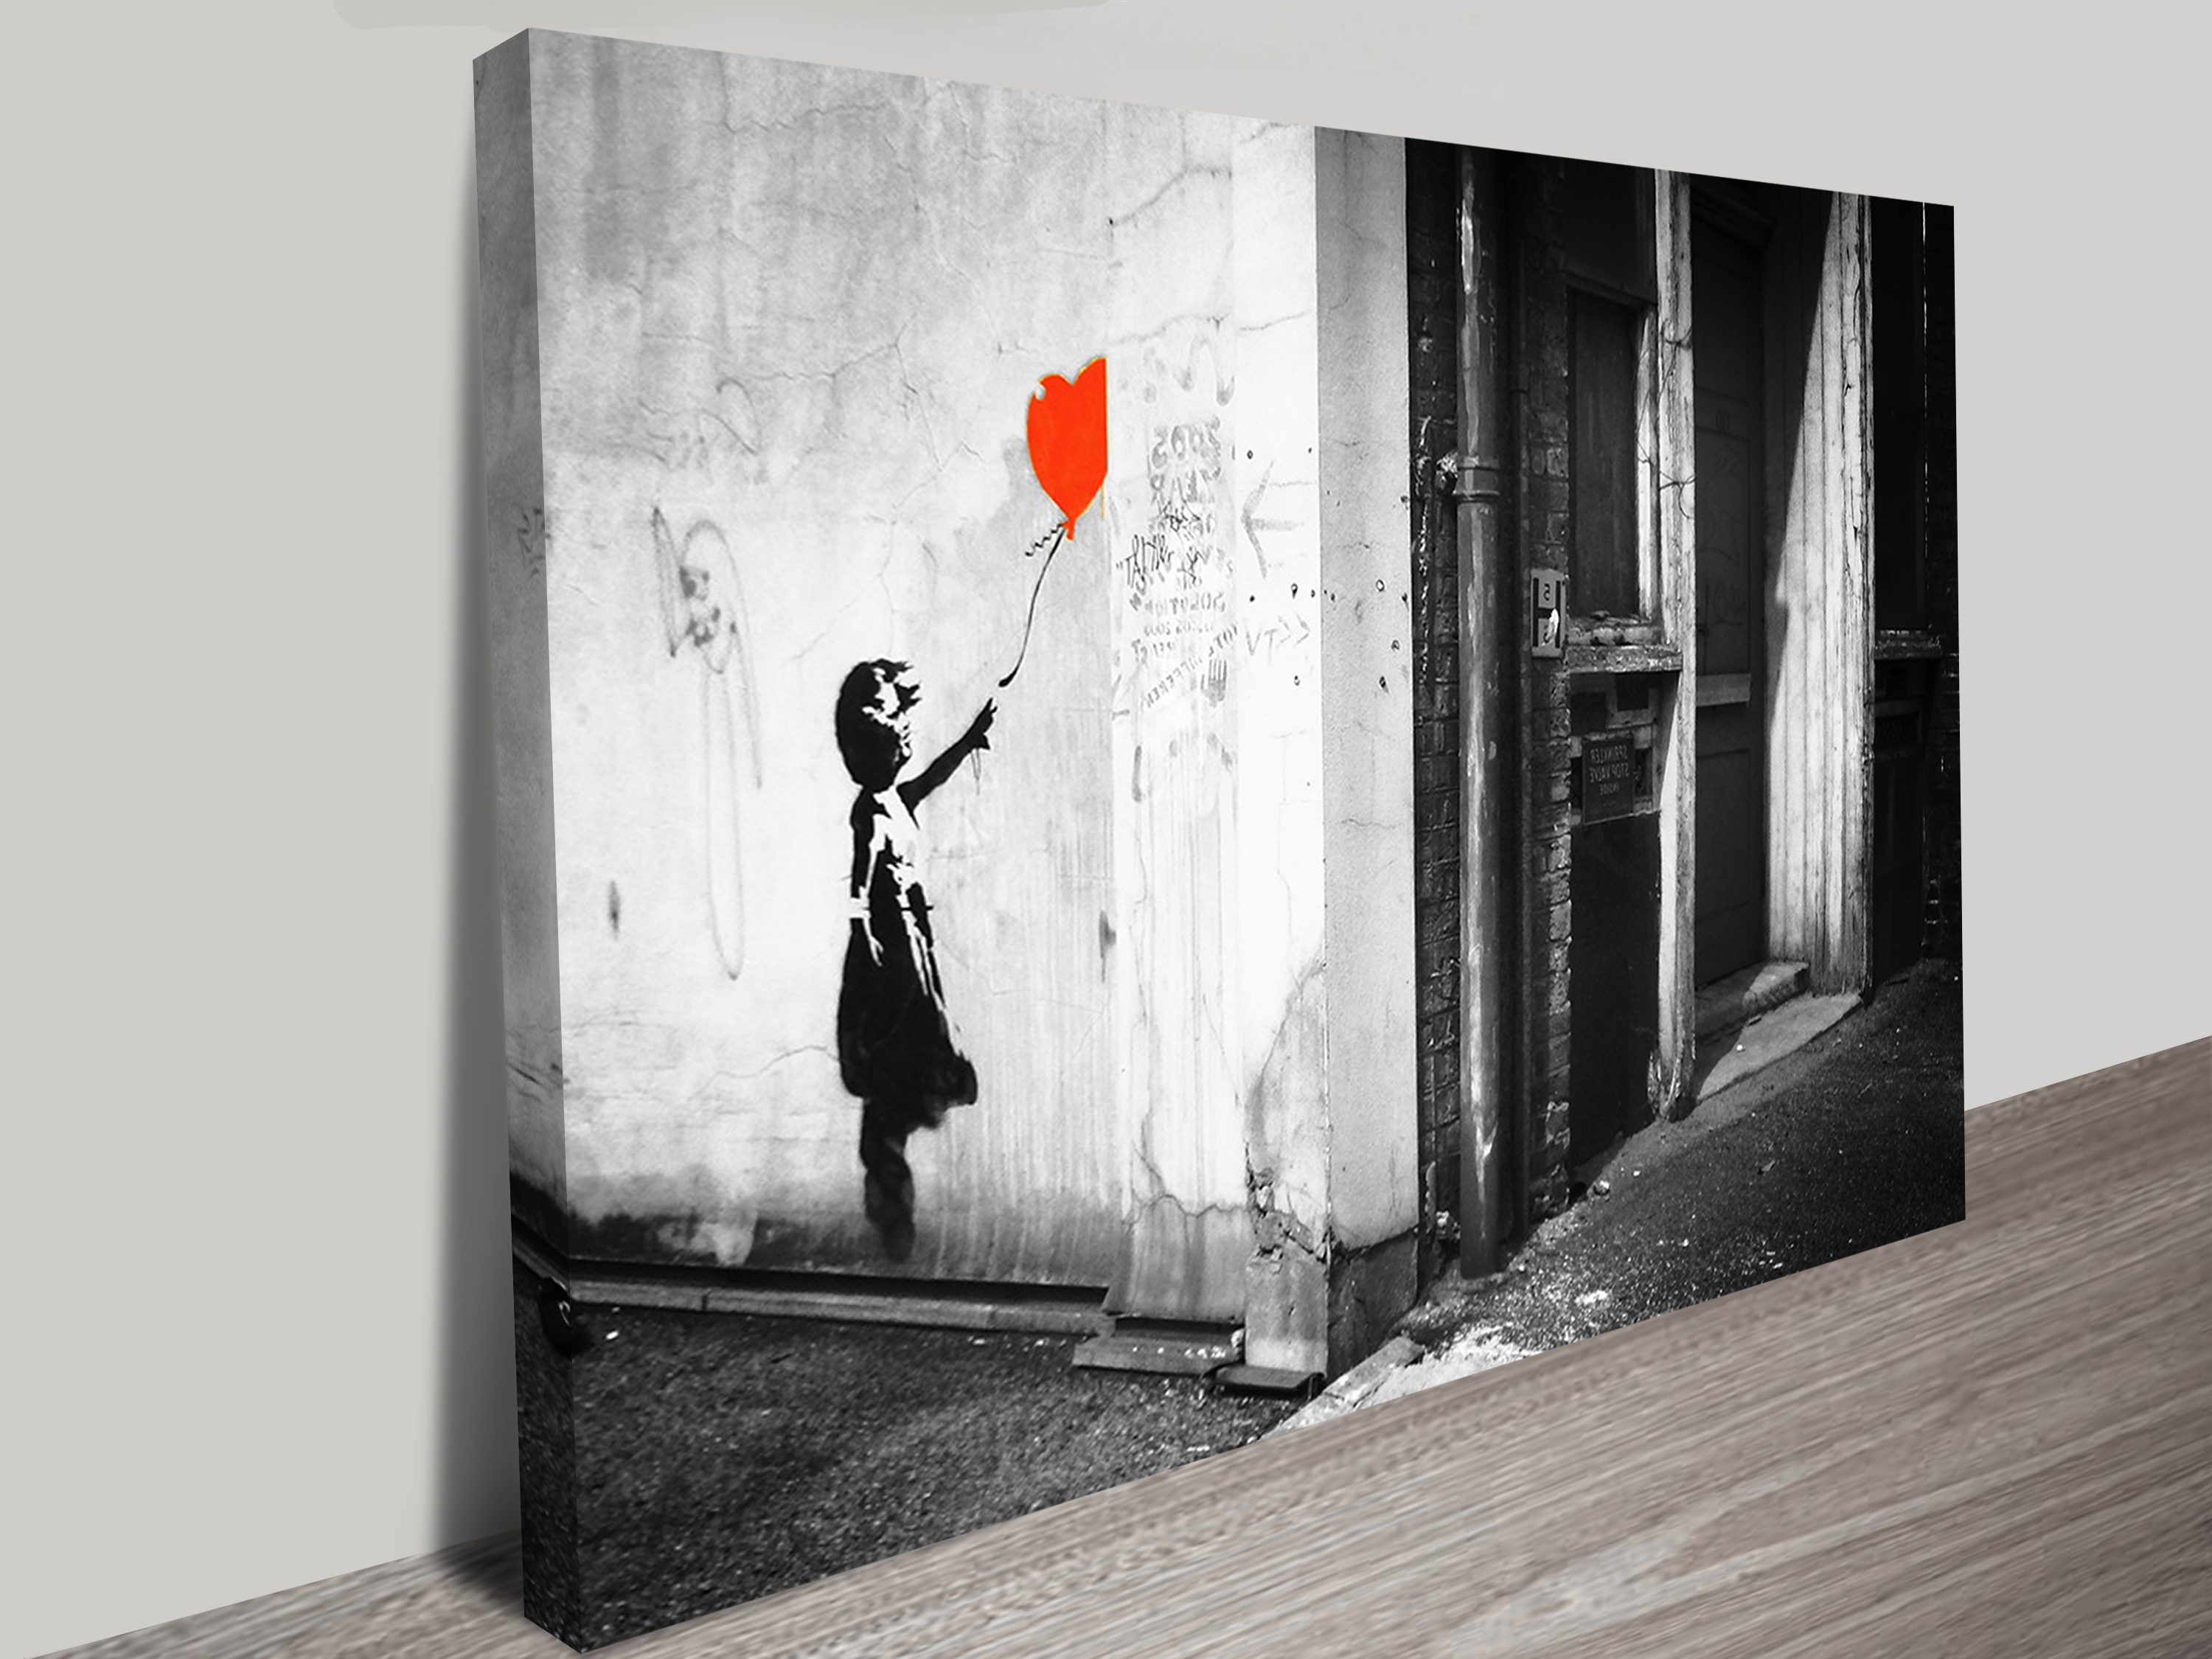 Best And Newest Banksy Balloon Girl Black & White Print On Canvas With Regard To Canvas Wall Art In Melbourne (View 4 of 15)